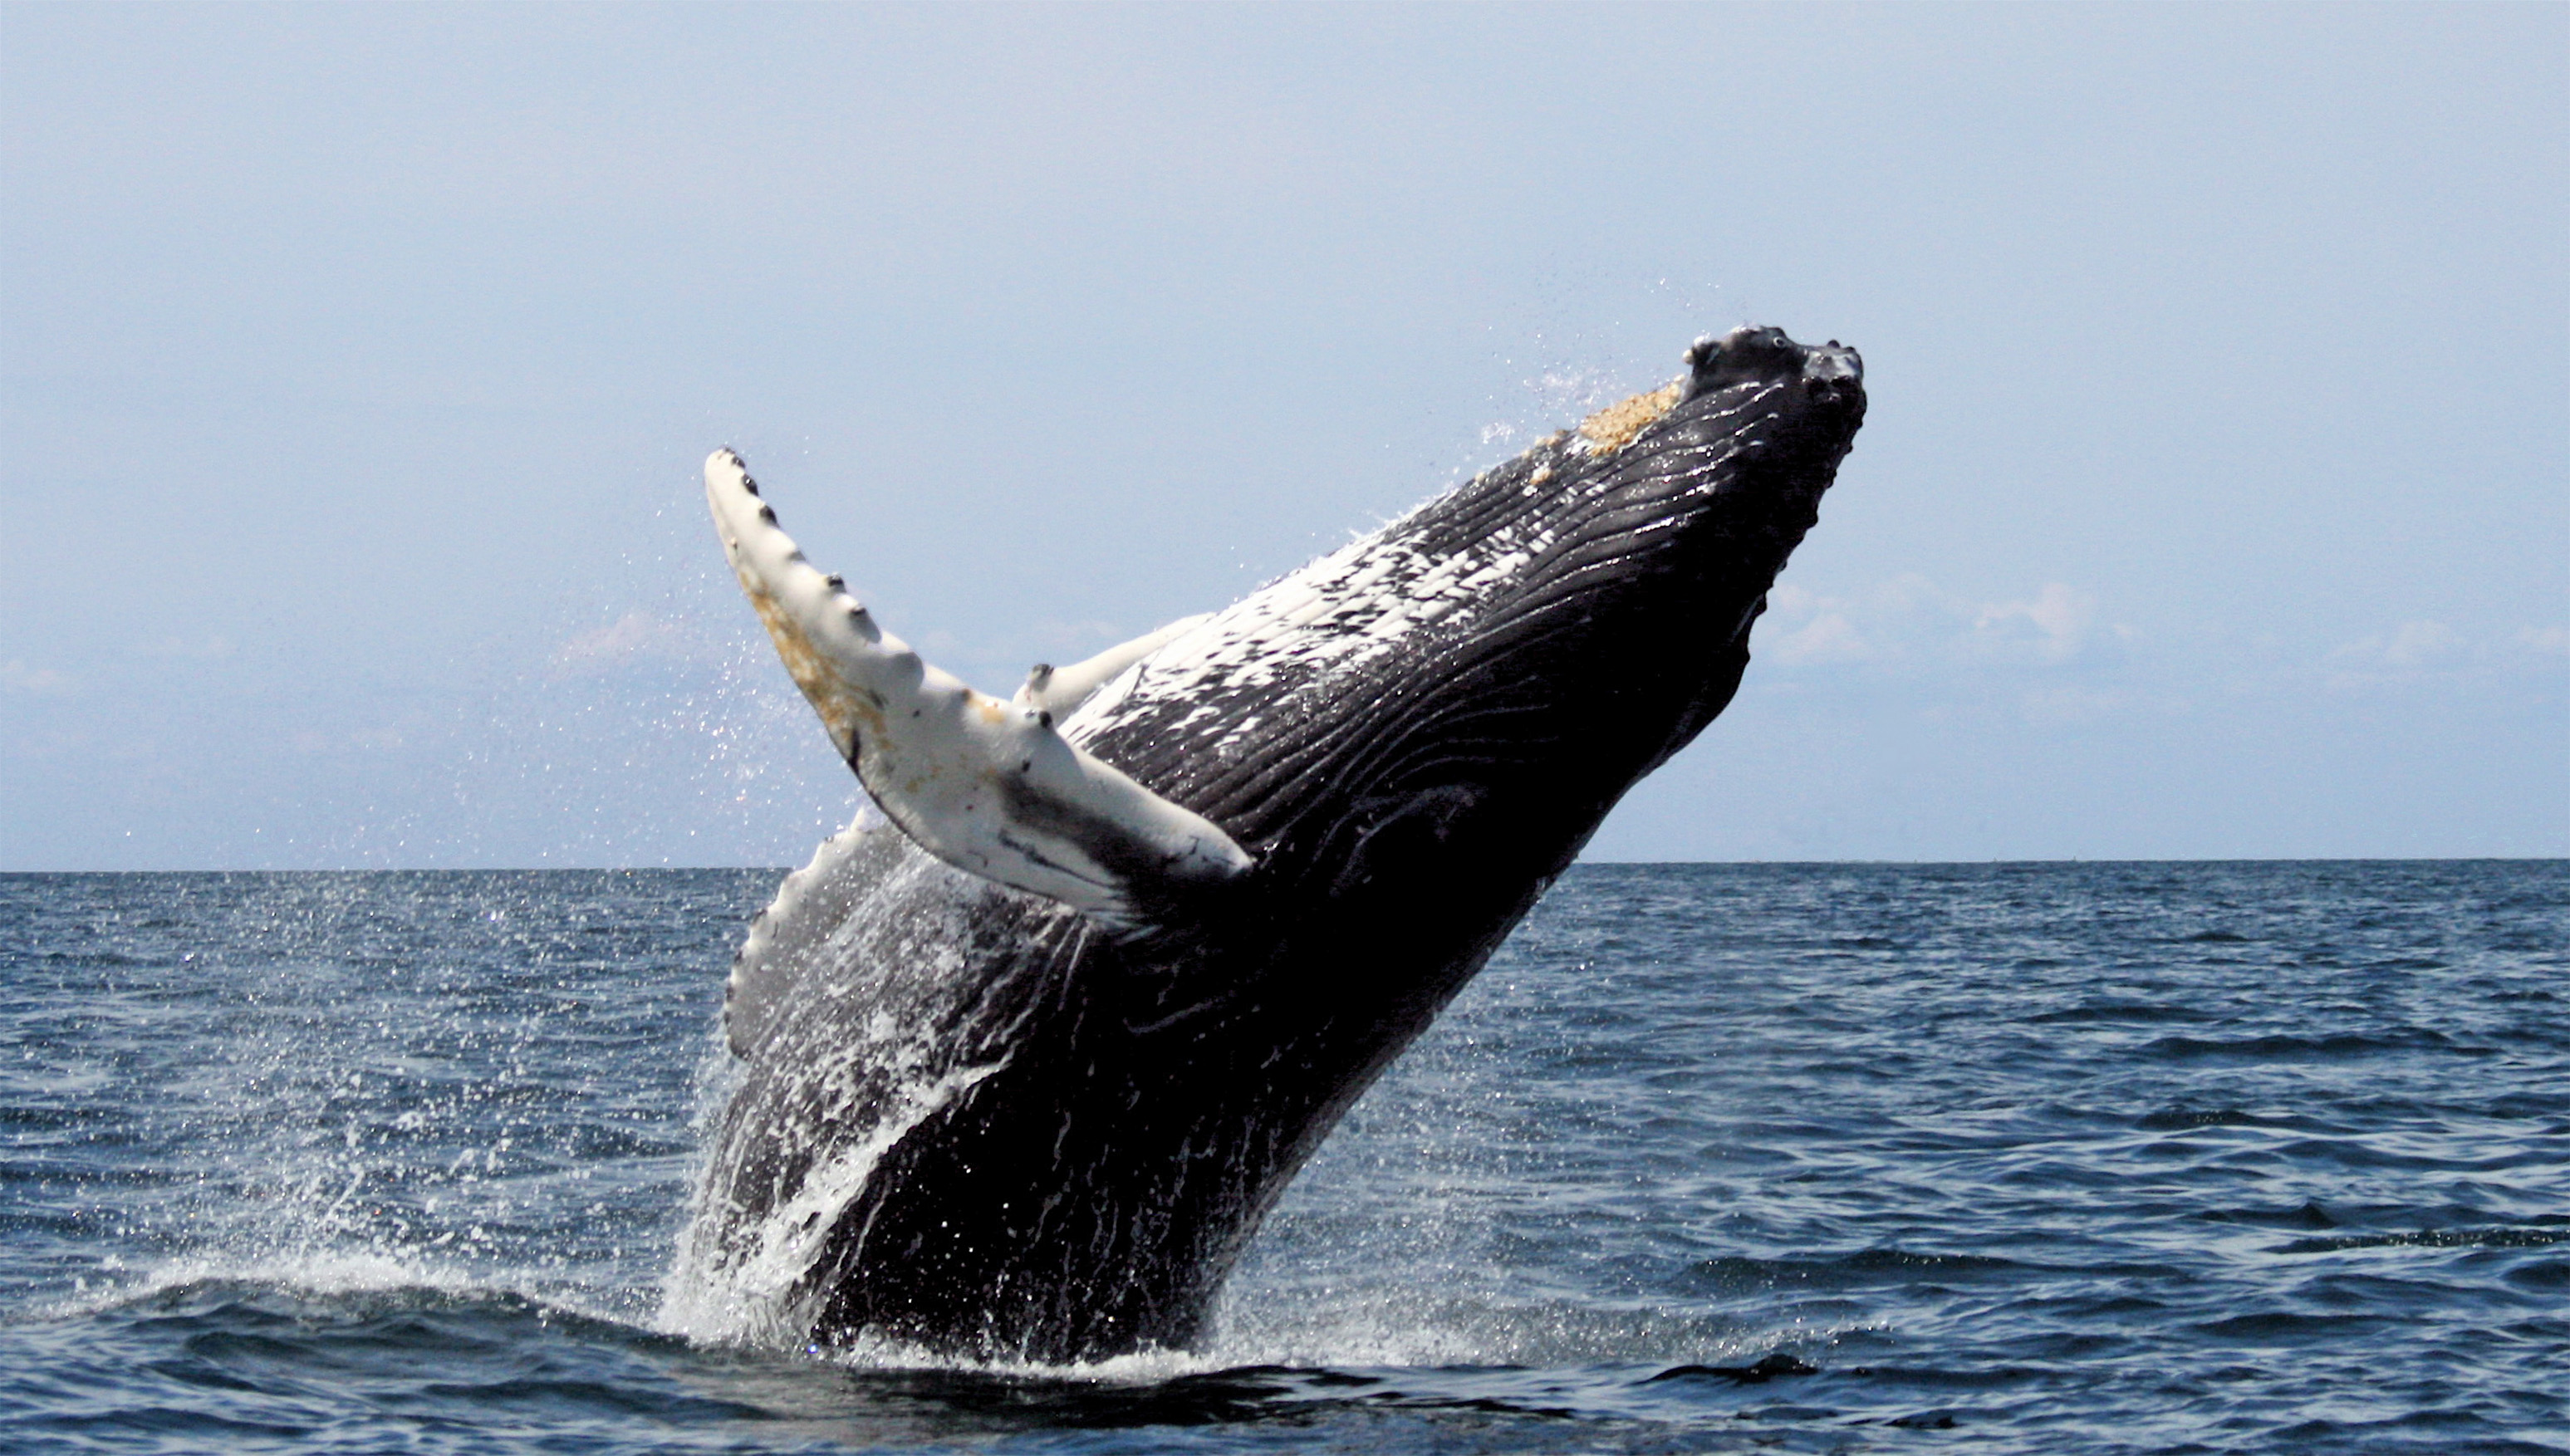 POLL: Should Humpback Whales Be Removed From the Endangered Species List in 2014?